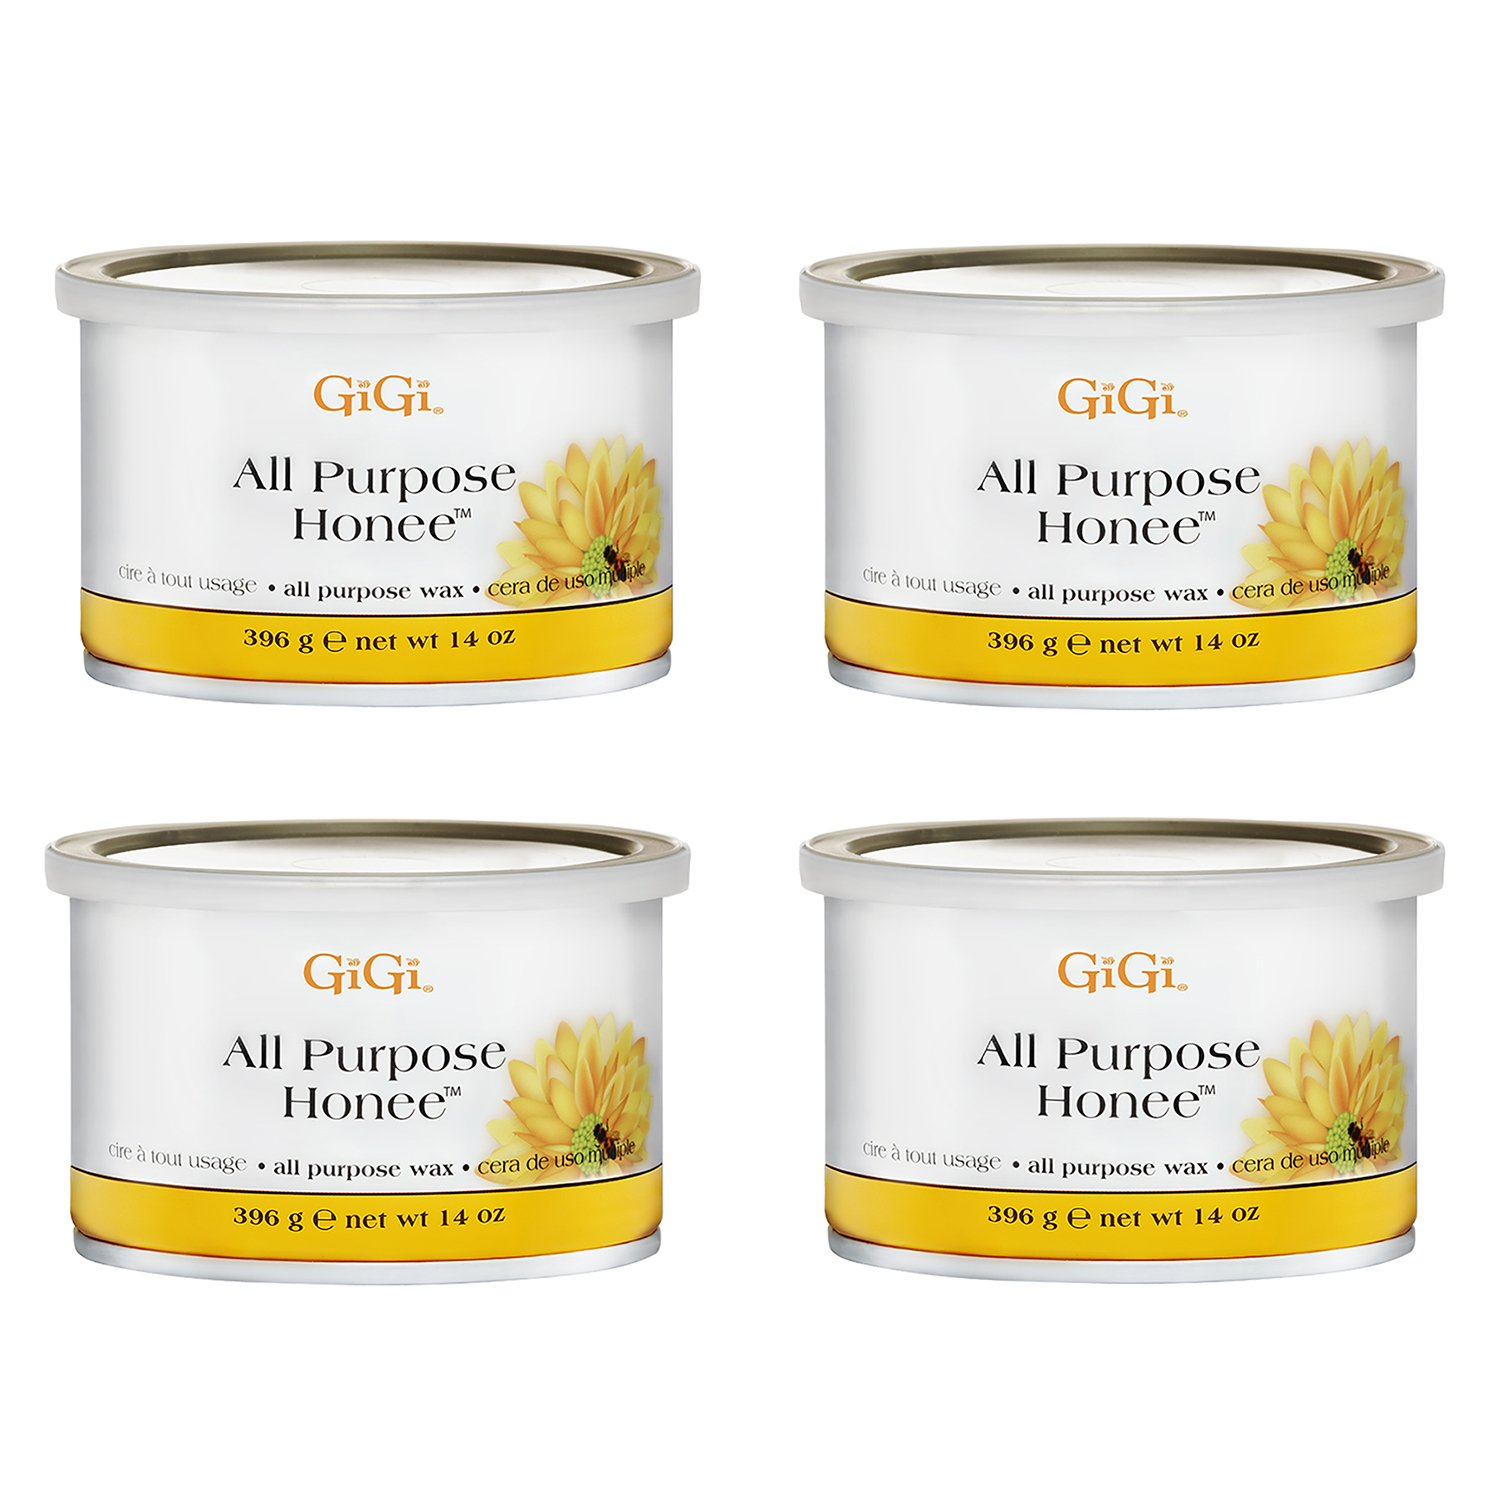 GiGi All Purpose Wax - Honee 235 ml (Pack of 4) 4 x 0330-HONEE